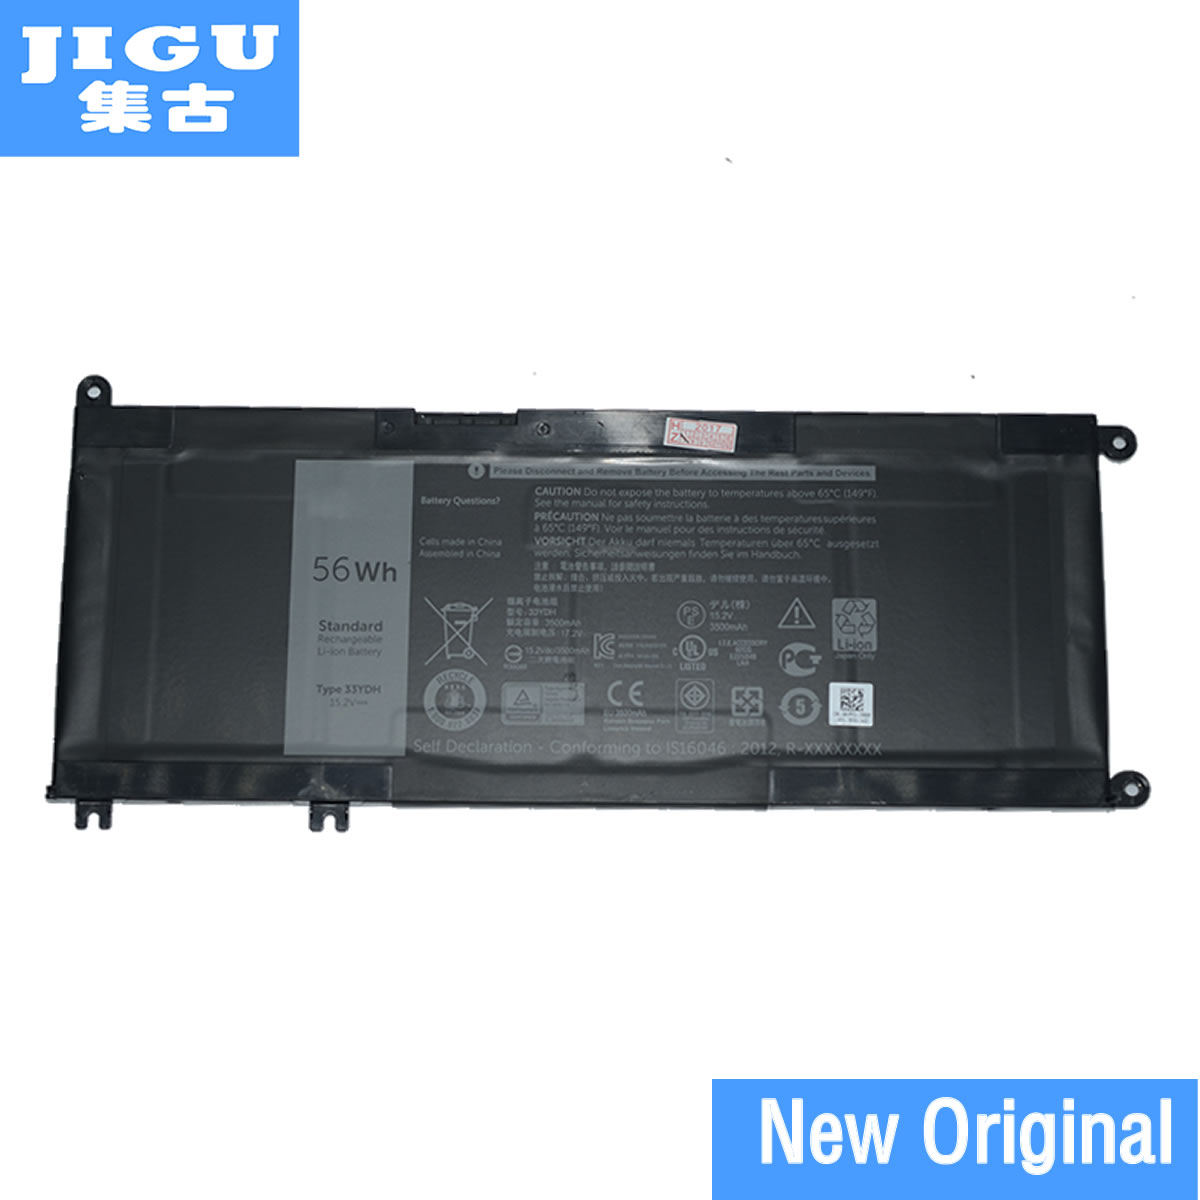 JIGU Original Laptop Battery 33YDH For DELL For Inspiron 17 7778 7779